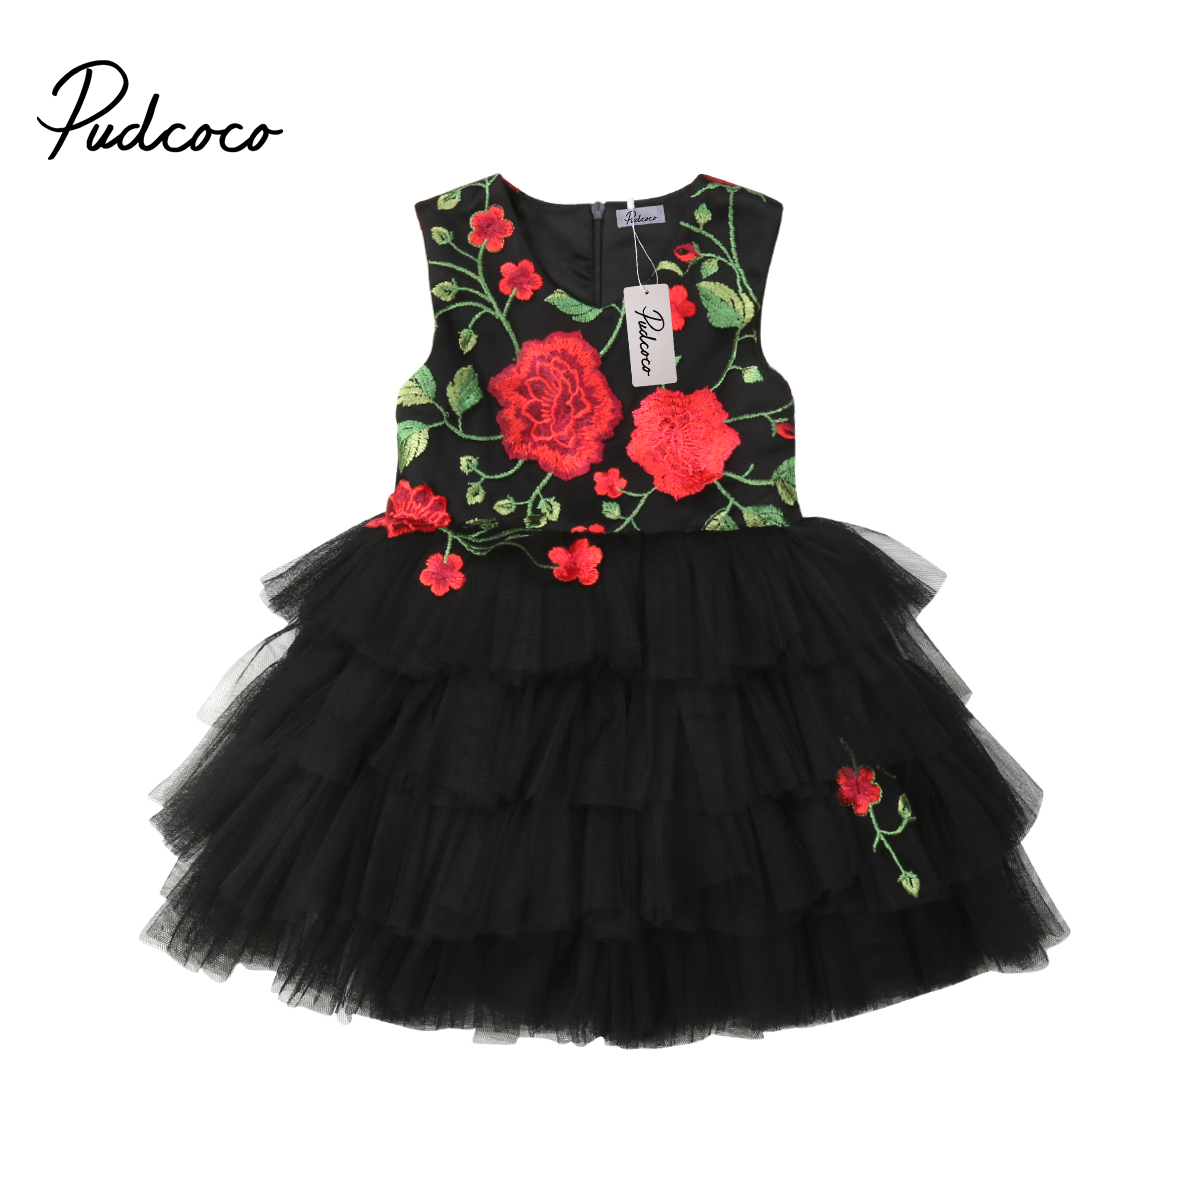 Pudcoco Flower Girls Princess Kids Baby Party Pageant Bridesmaid Formal Tulle Dress